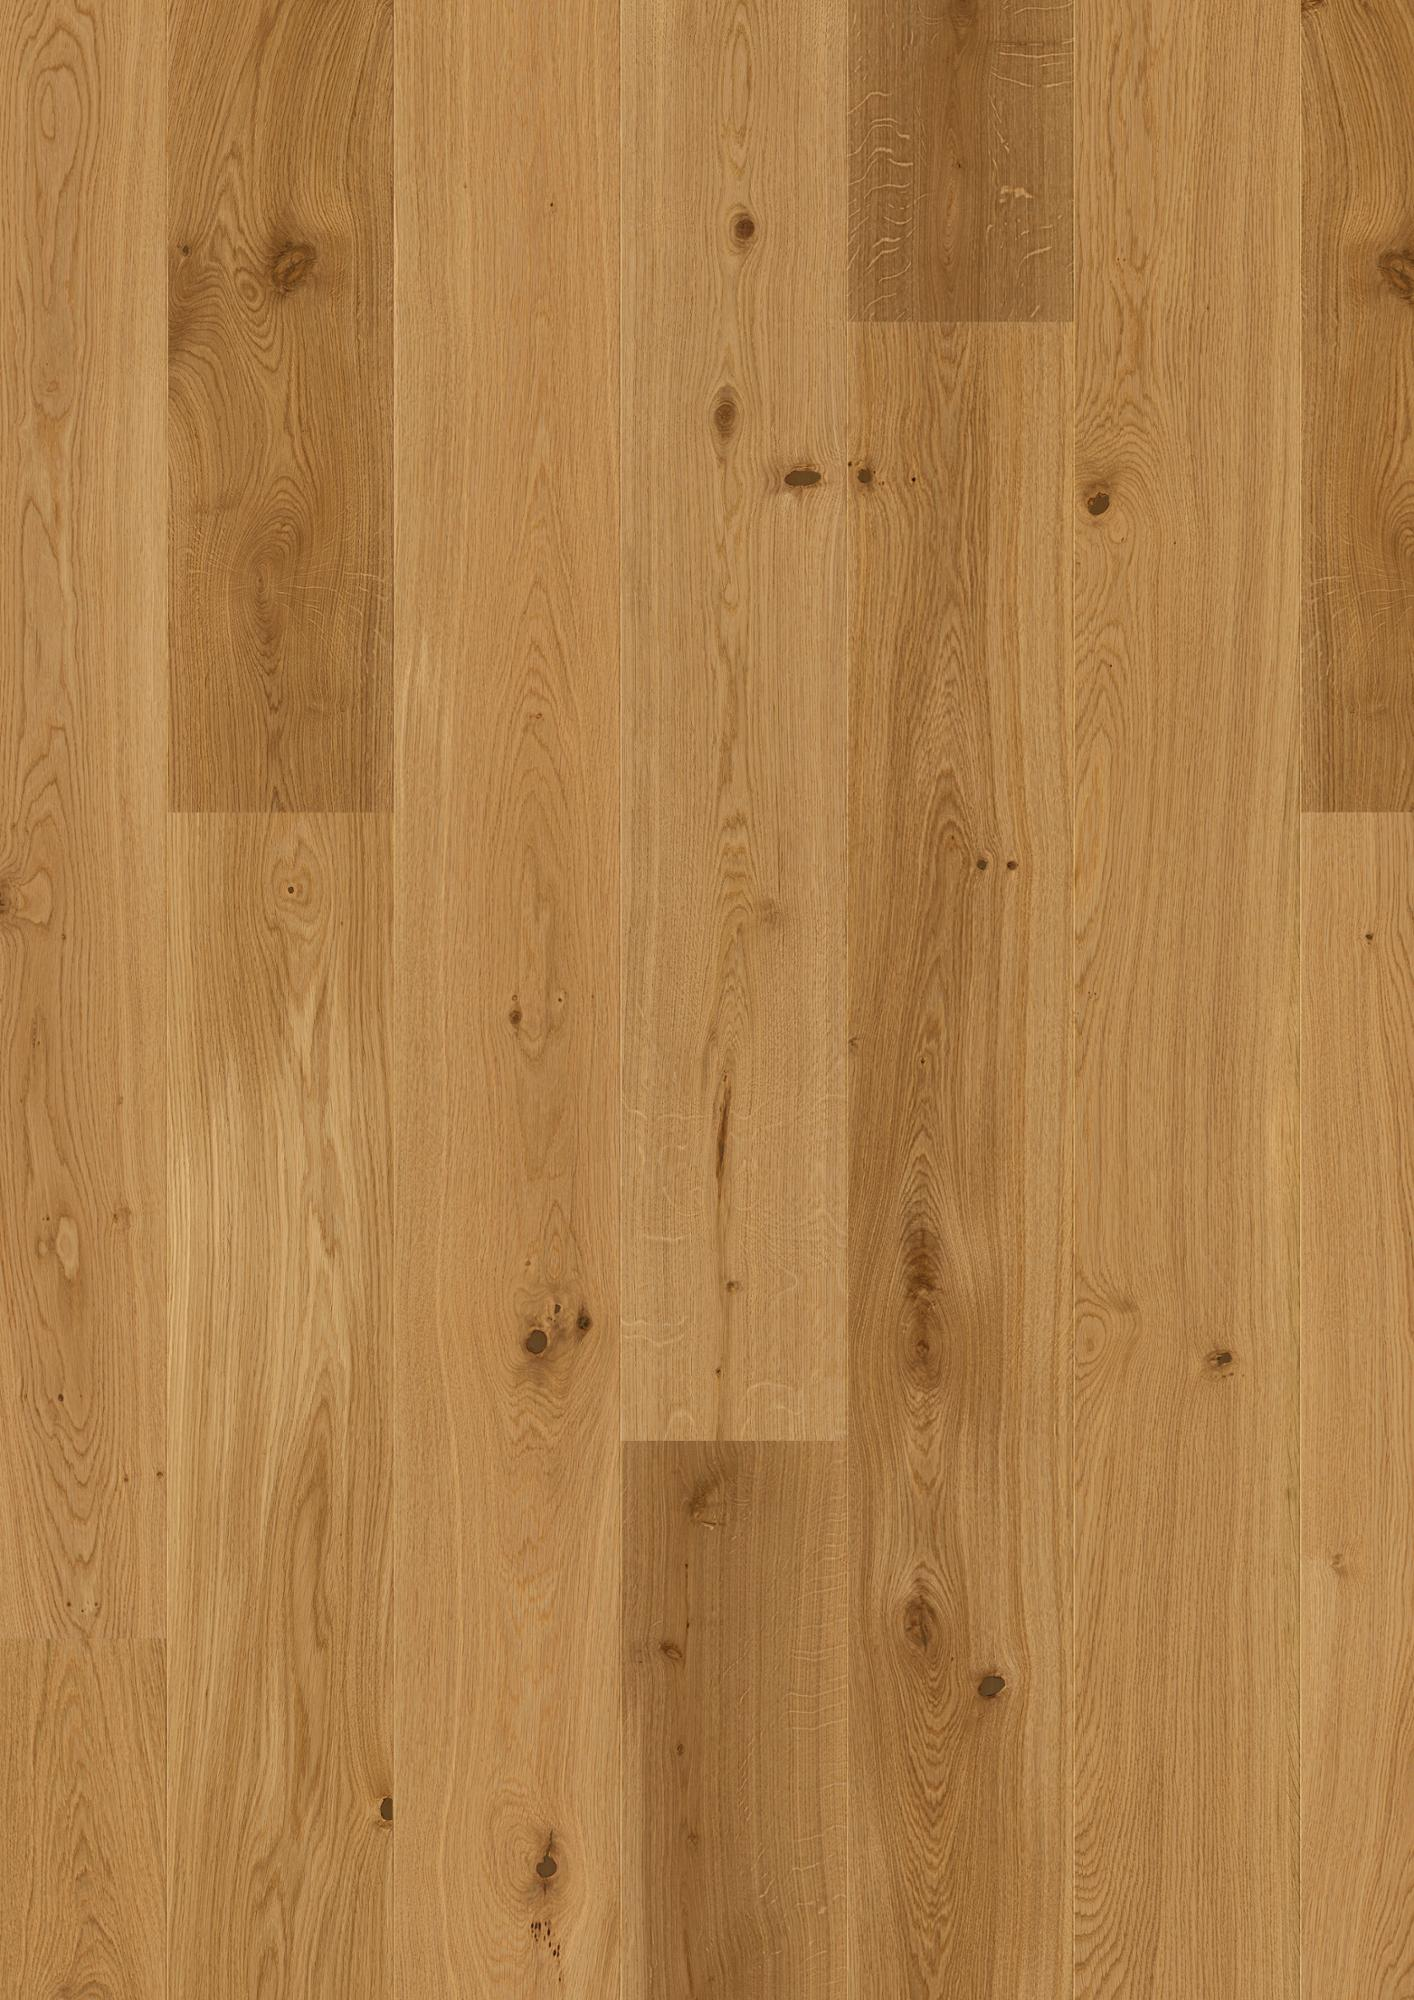 Oak Animoso, Live Natural oil, Not brushed, Beveled 2V, Plank 181, 14x181x2200mm